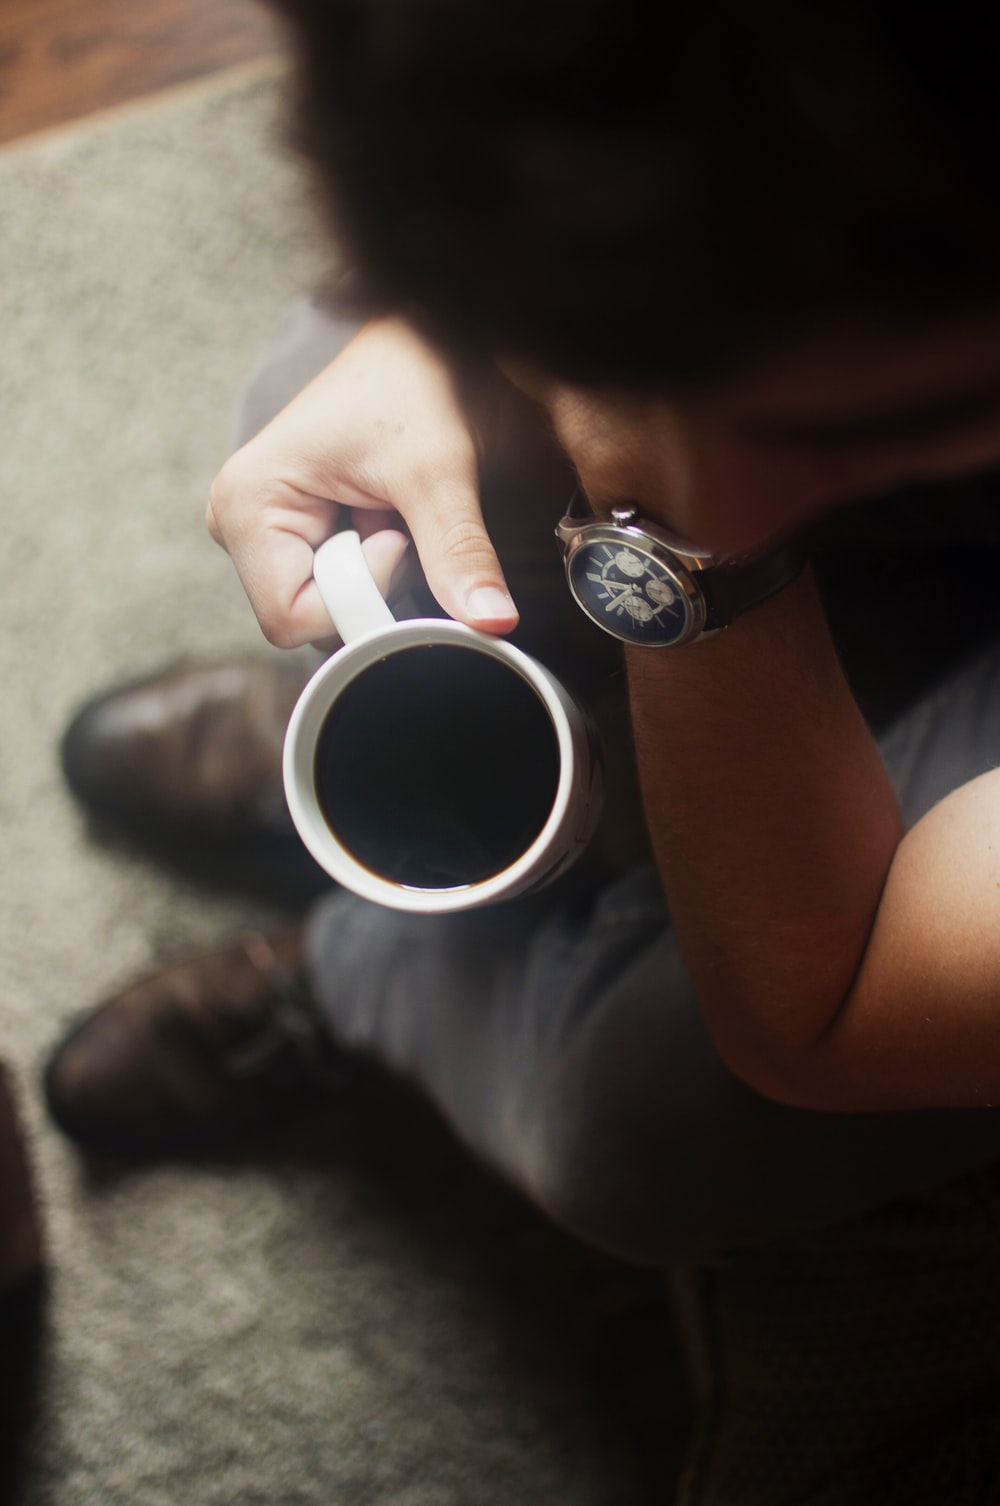 person sitting on couch holding coffee mug